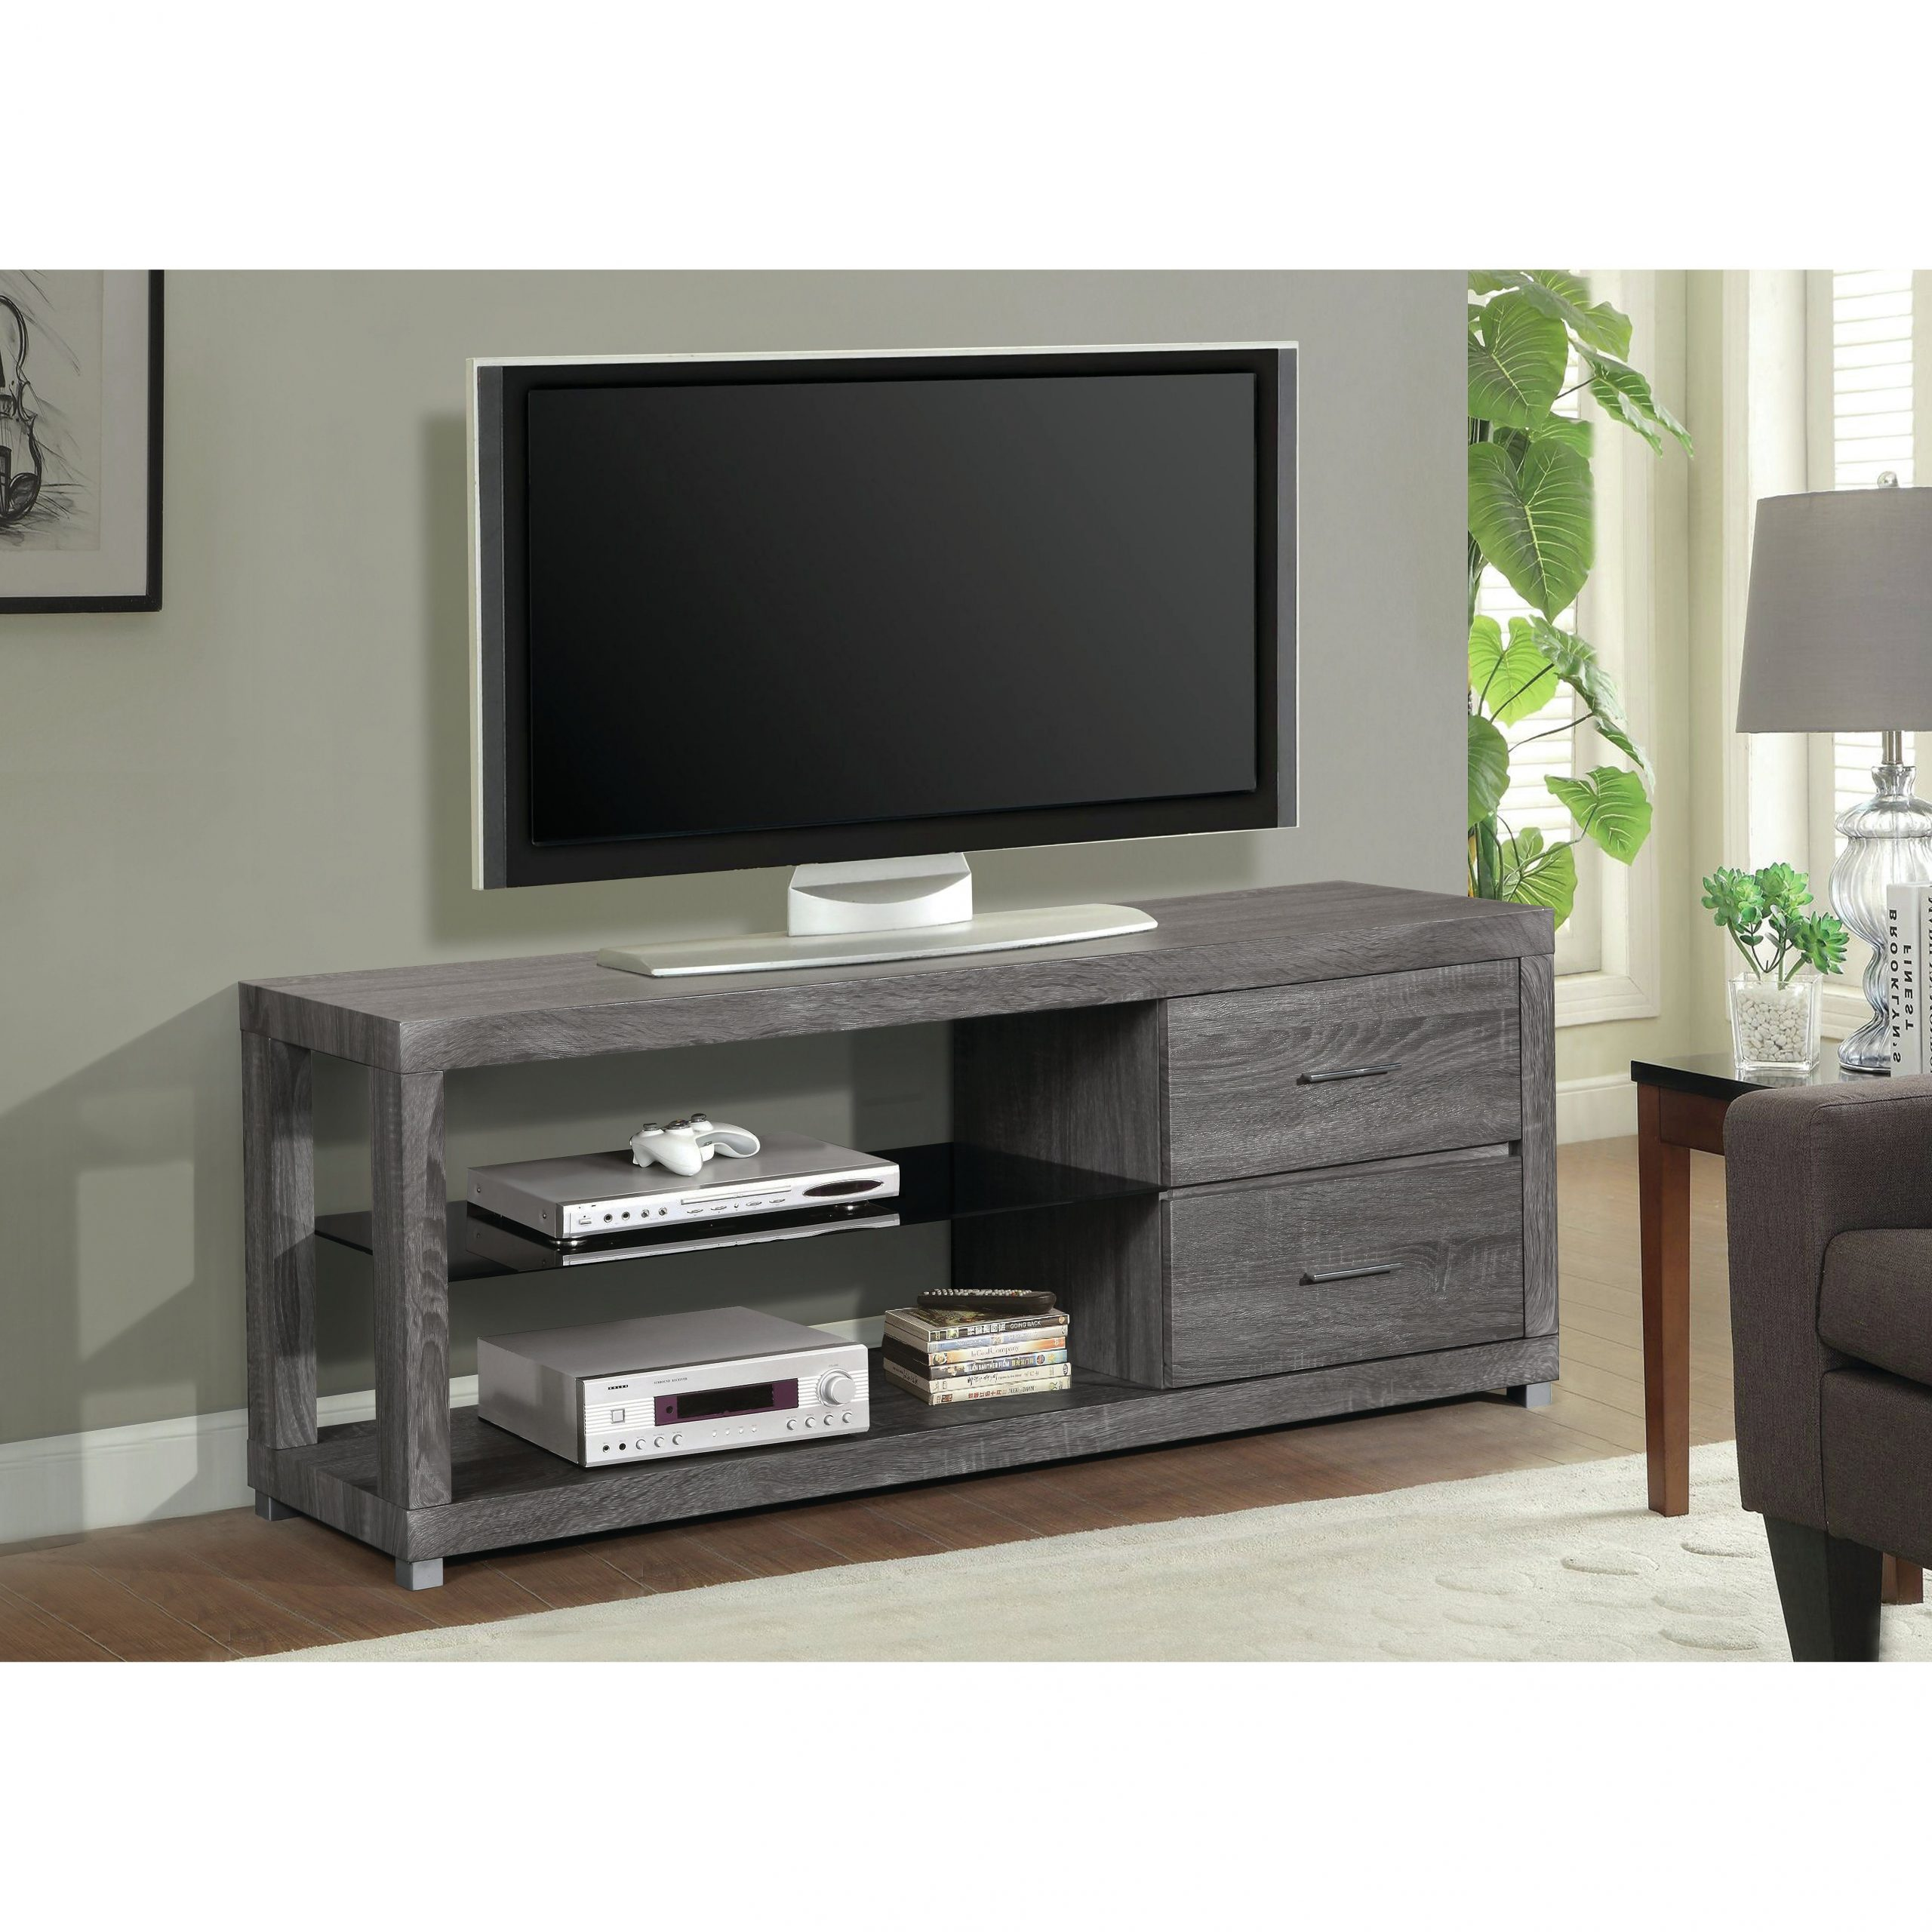 Wade Logan® Stockwood Tv Stand | Tv Stand With Storage, Tv Throughout Logan Tv Stands (View 1 of 15)